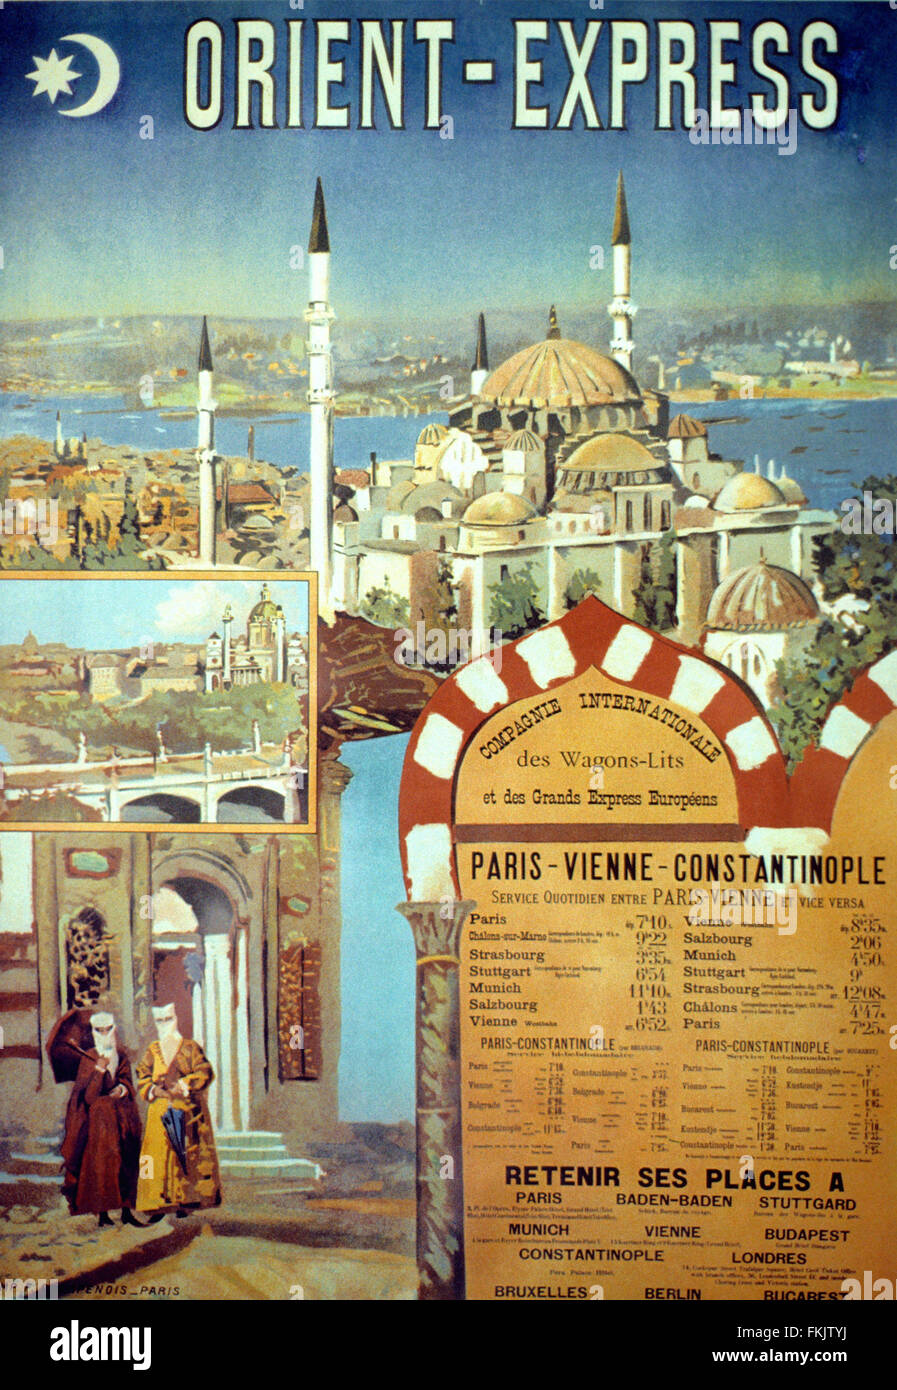 Vintage Advert or Publicity for the Orient Express Train with Background of Istanbul and the Suleimaniye Mosque - Stock Image